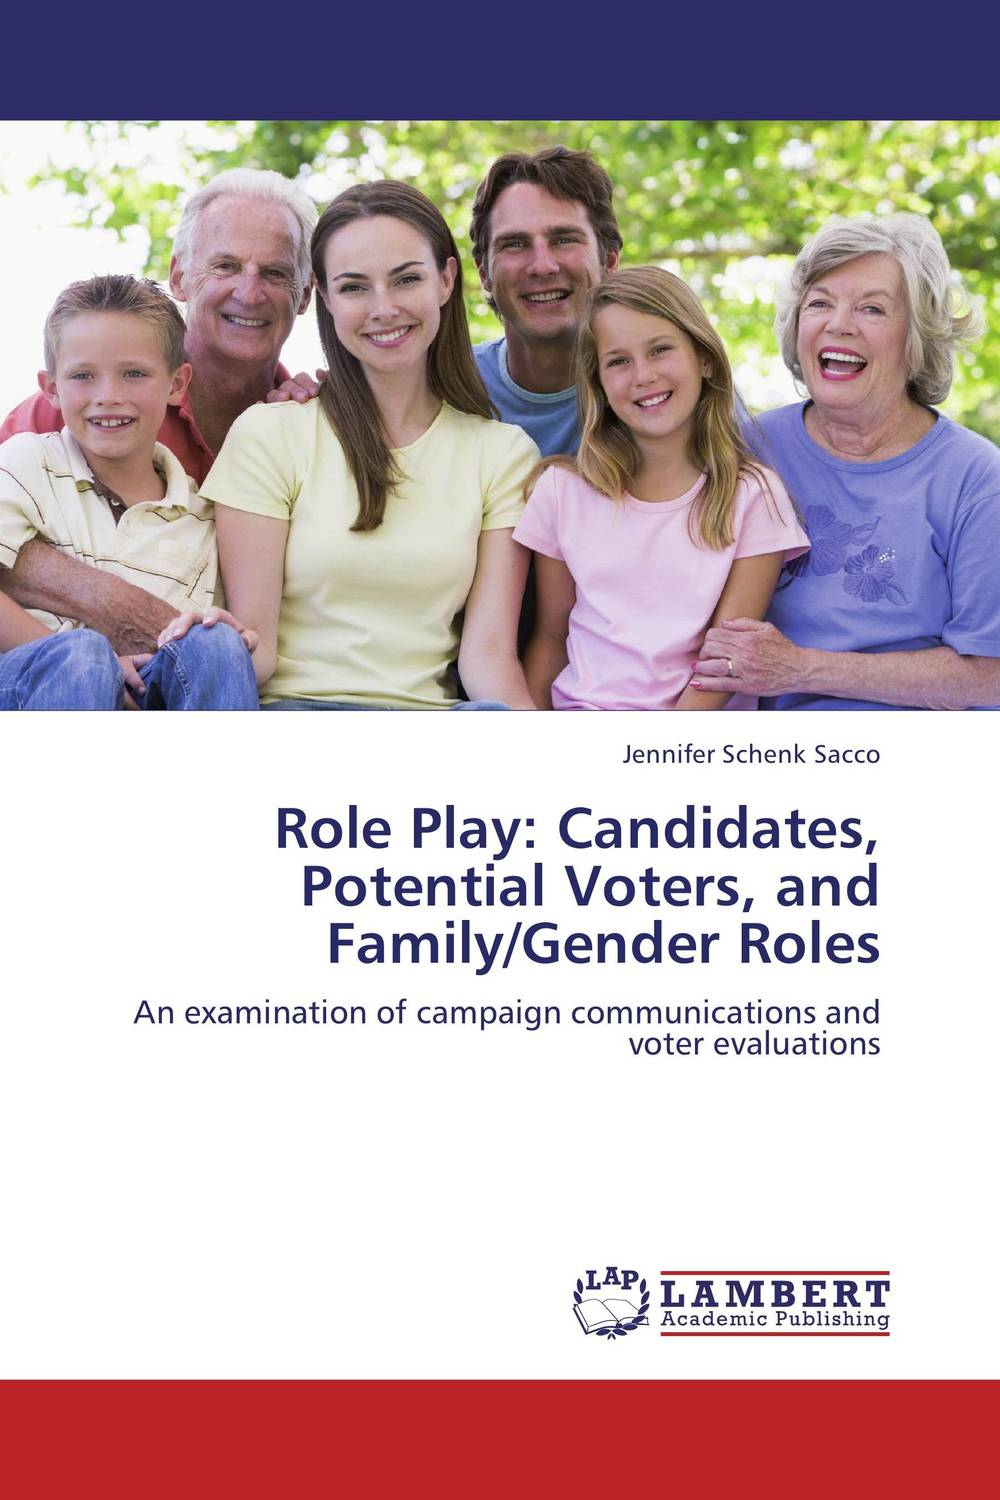 Role Play: Candidates, Potential Voters, and Family/Gender Roles twister family board game that ties you up in knots